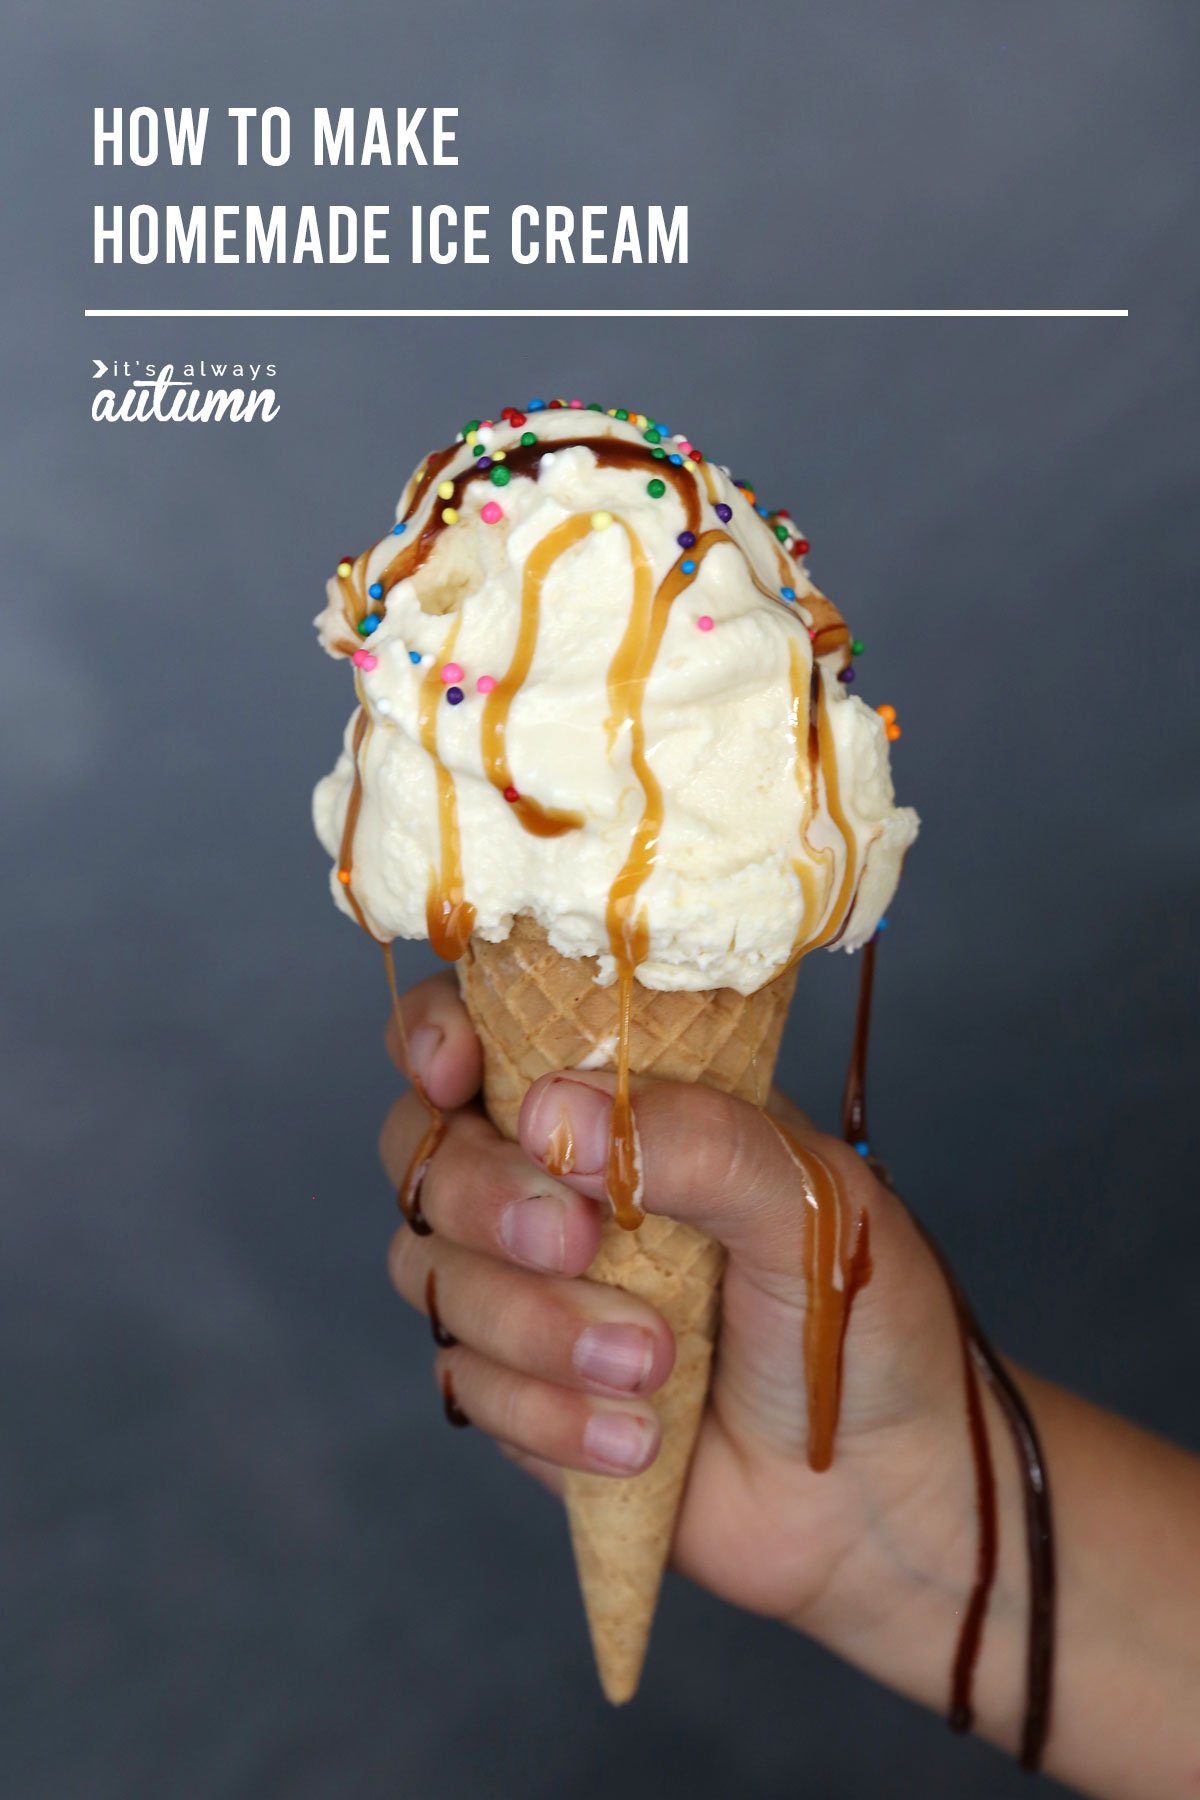 Hand holding a vanilla ice cream cone with chocolate and caramel syrup and sprinkles